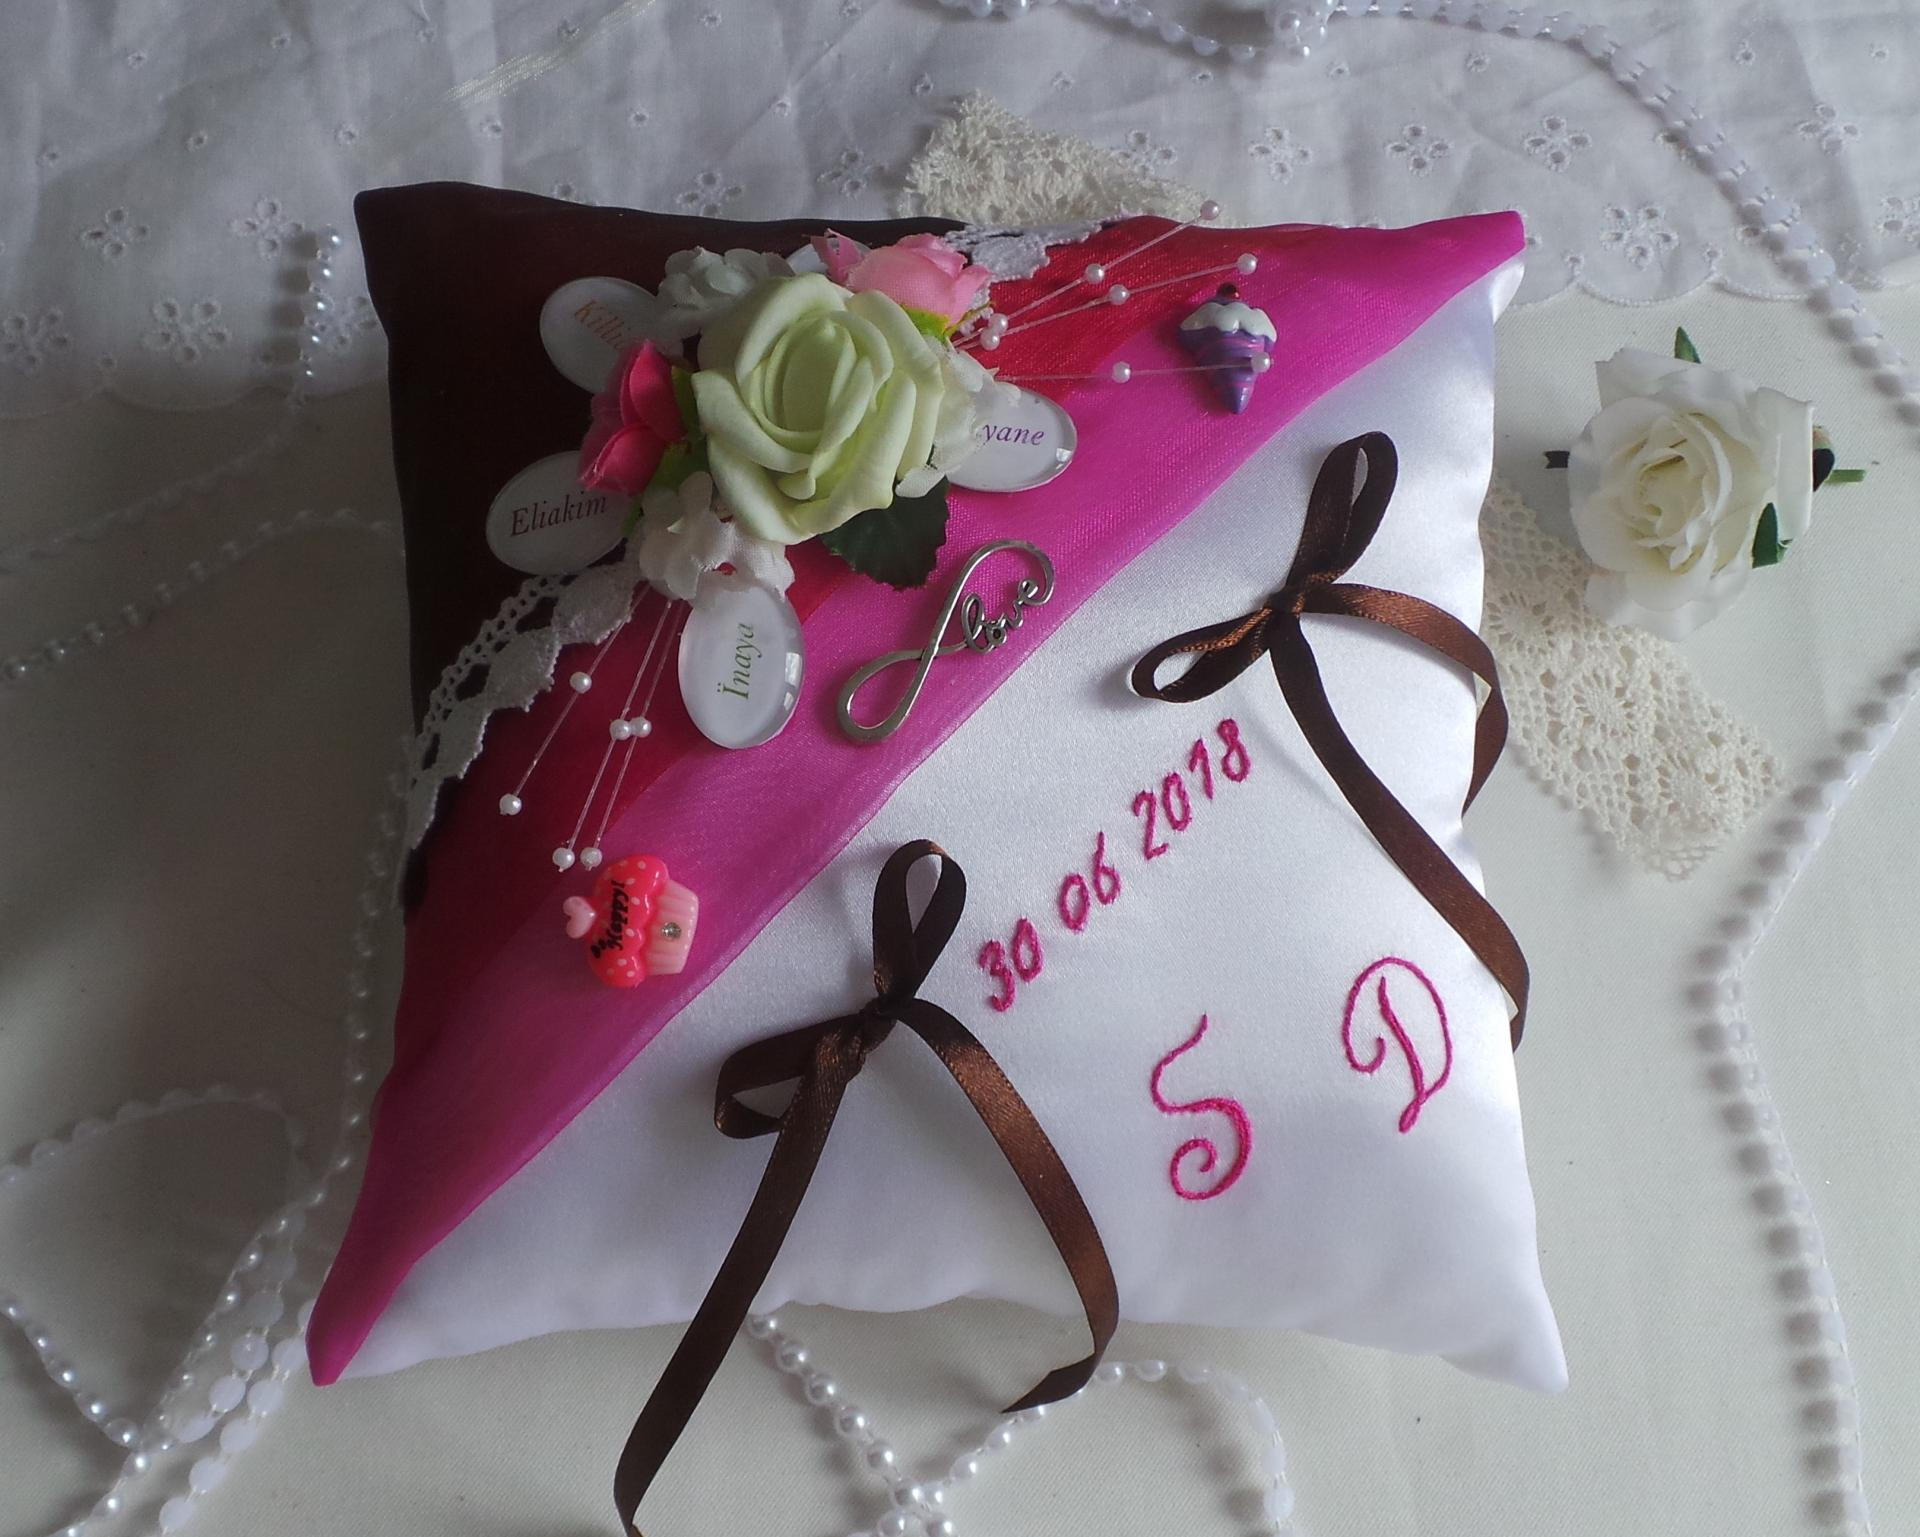 Coussin mariage décoration gourmandise chocolat fuchsia